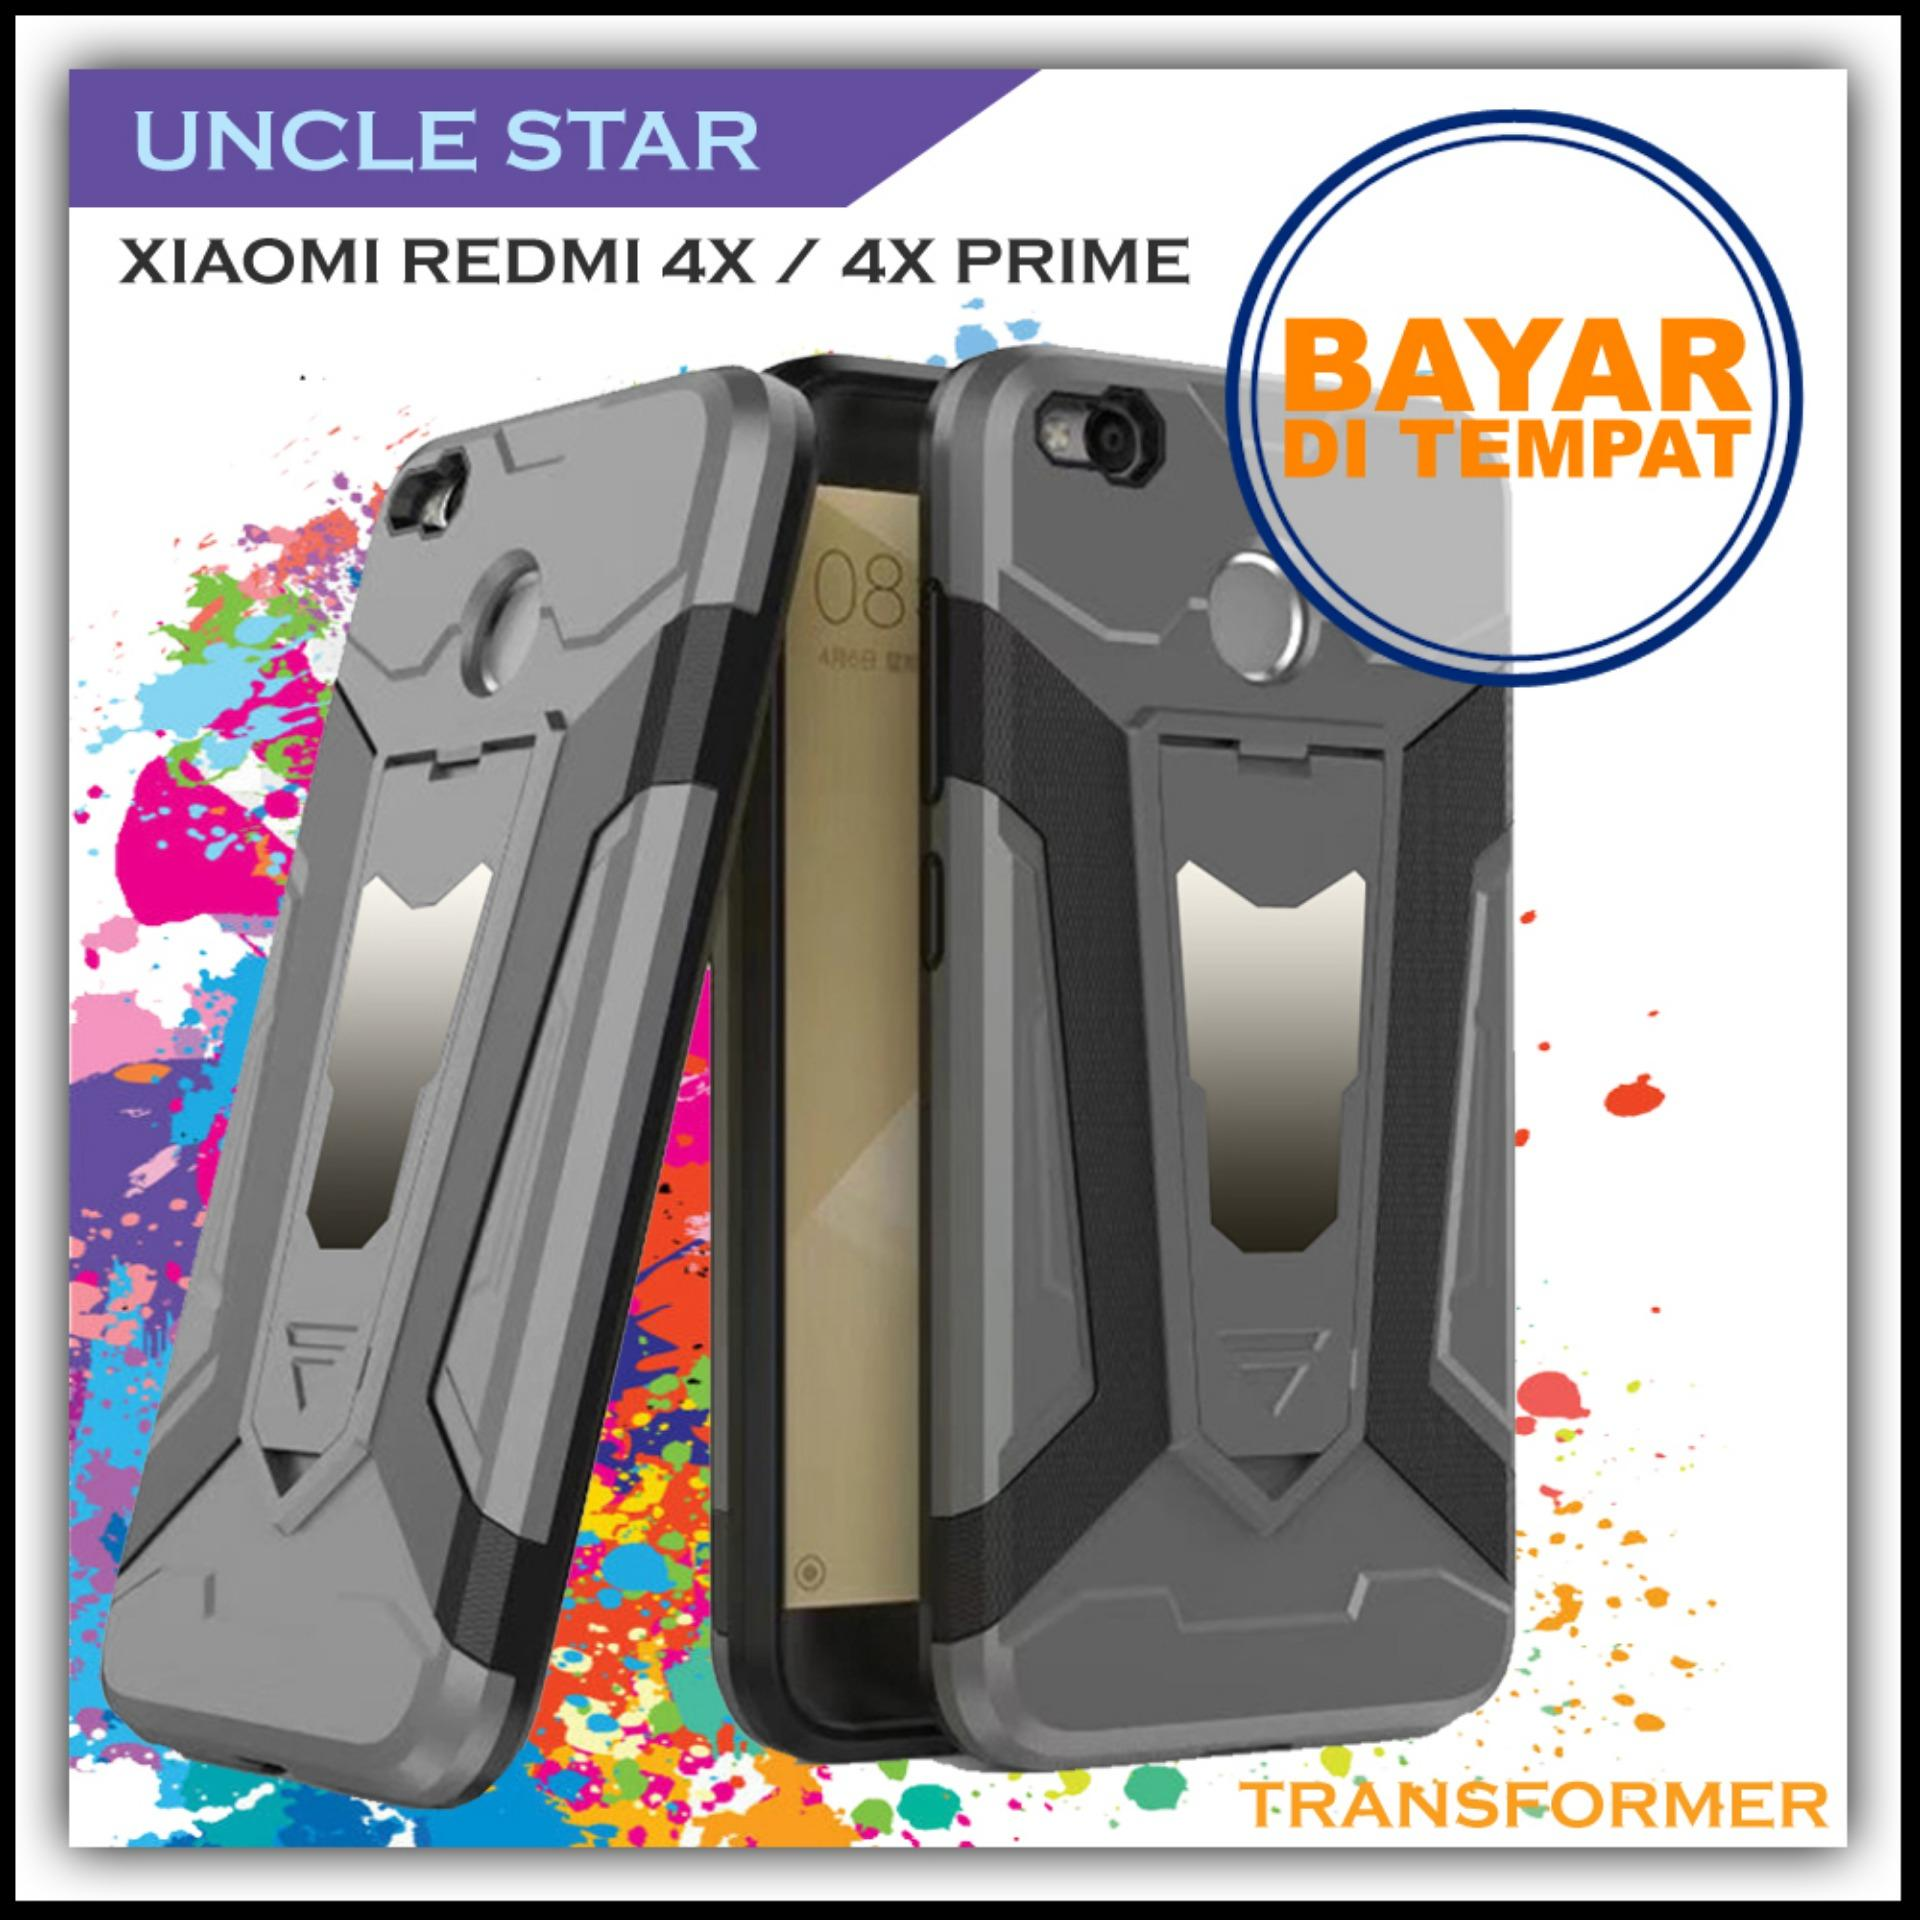 Uncle Star -HARDCASE For Xiaomi Redmi 4X / 4X Prime Pro Robot Transformer Ironman Limited